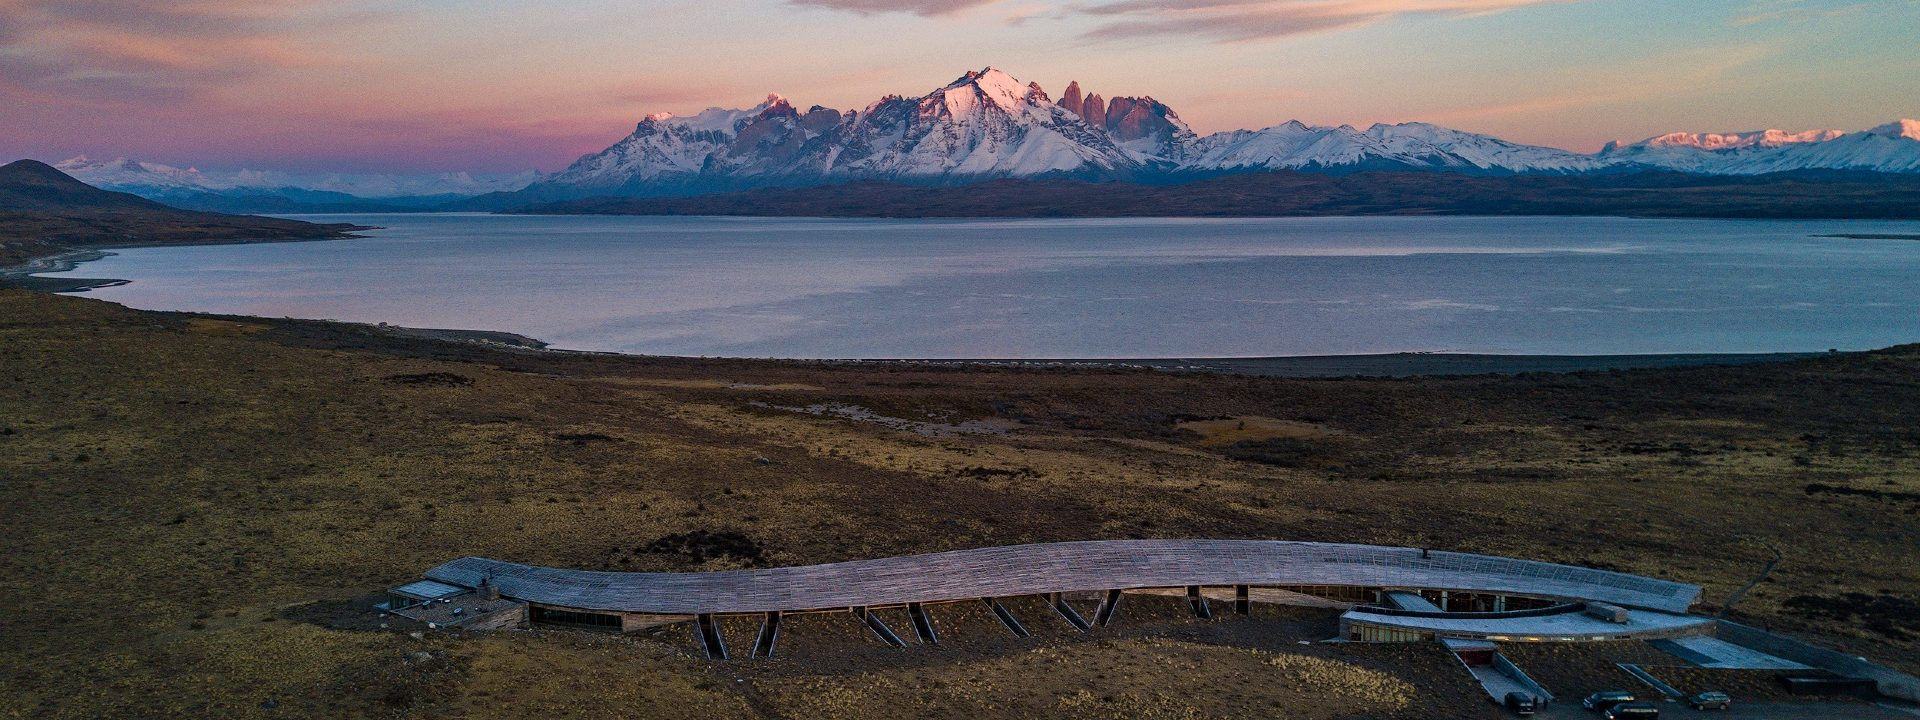 Boutique hotels in Chile showcase the country's stunning natural beauty